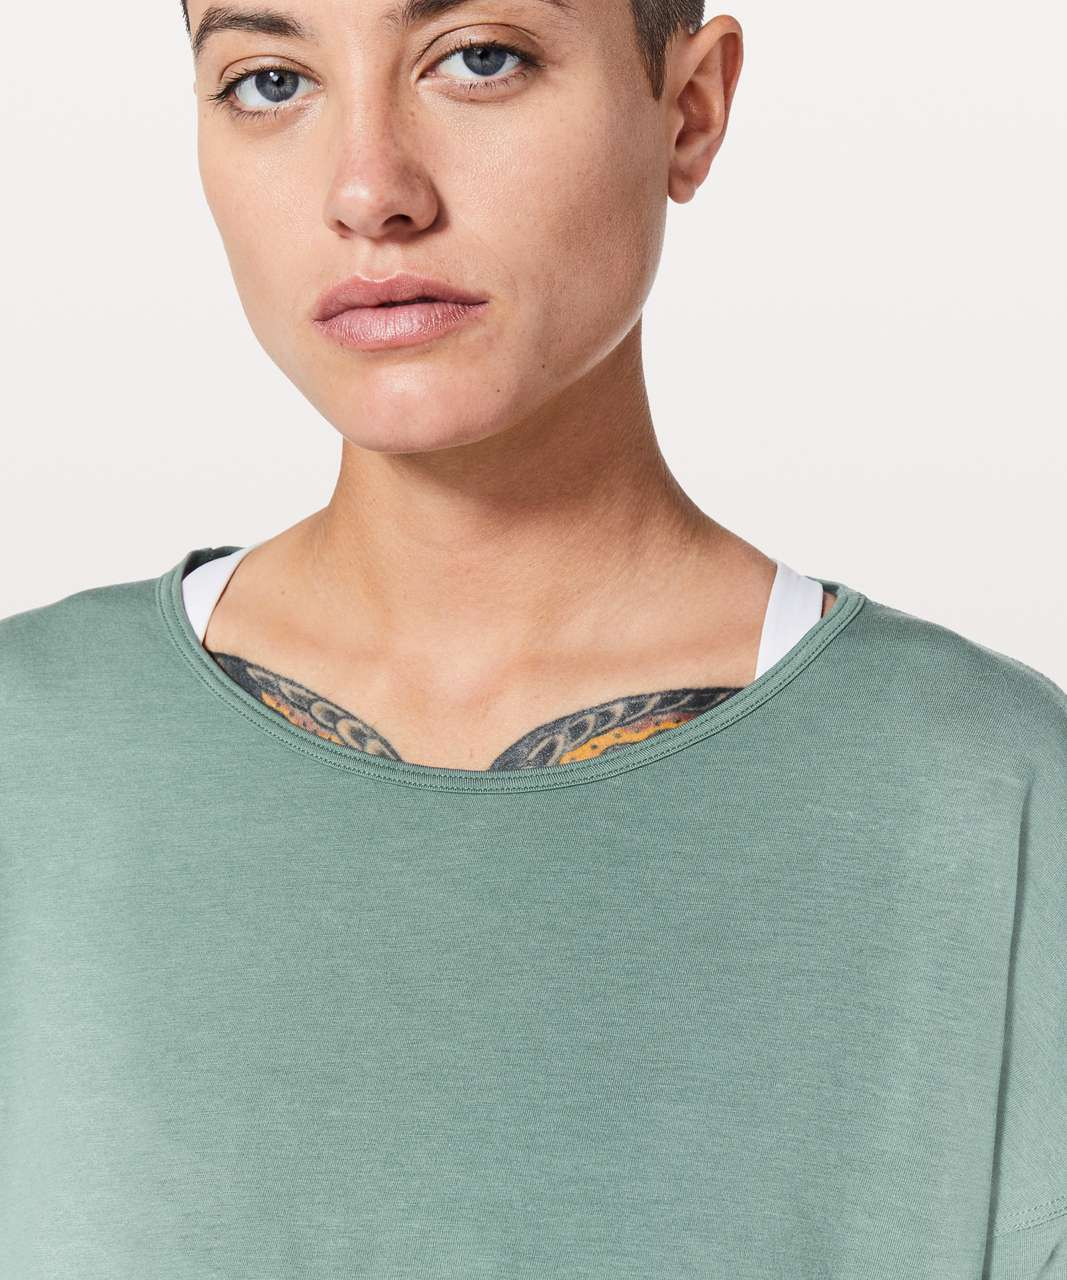 Lululemon Back Into It Long Sleeve - Juniper